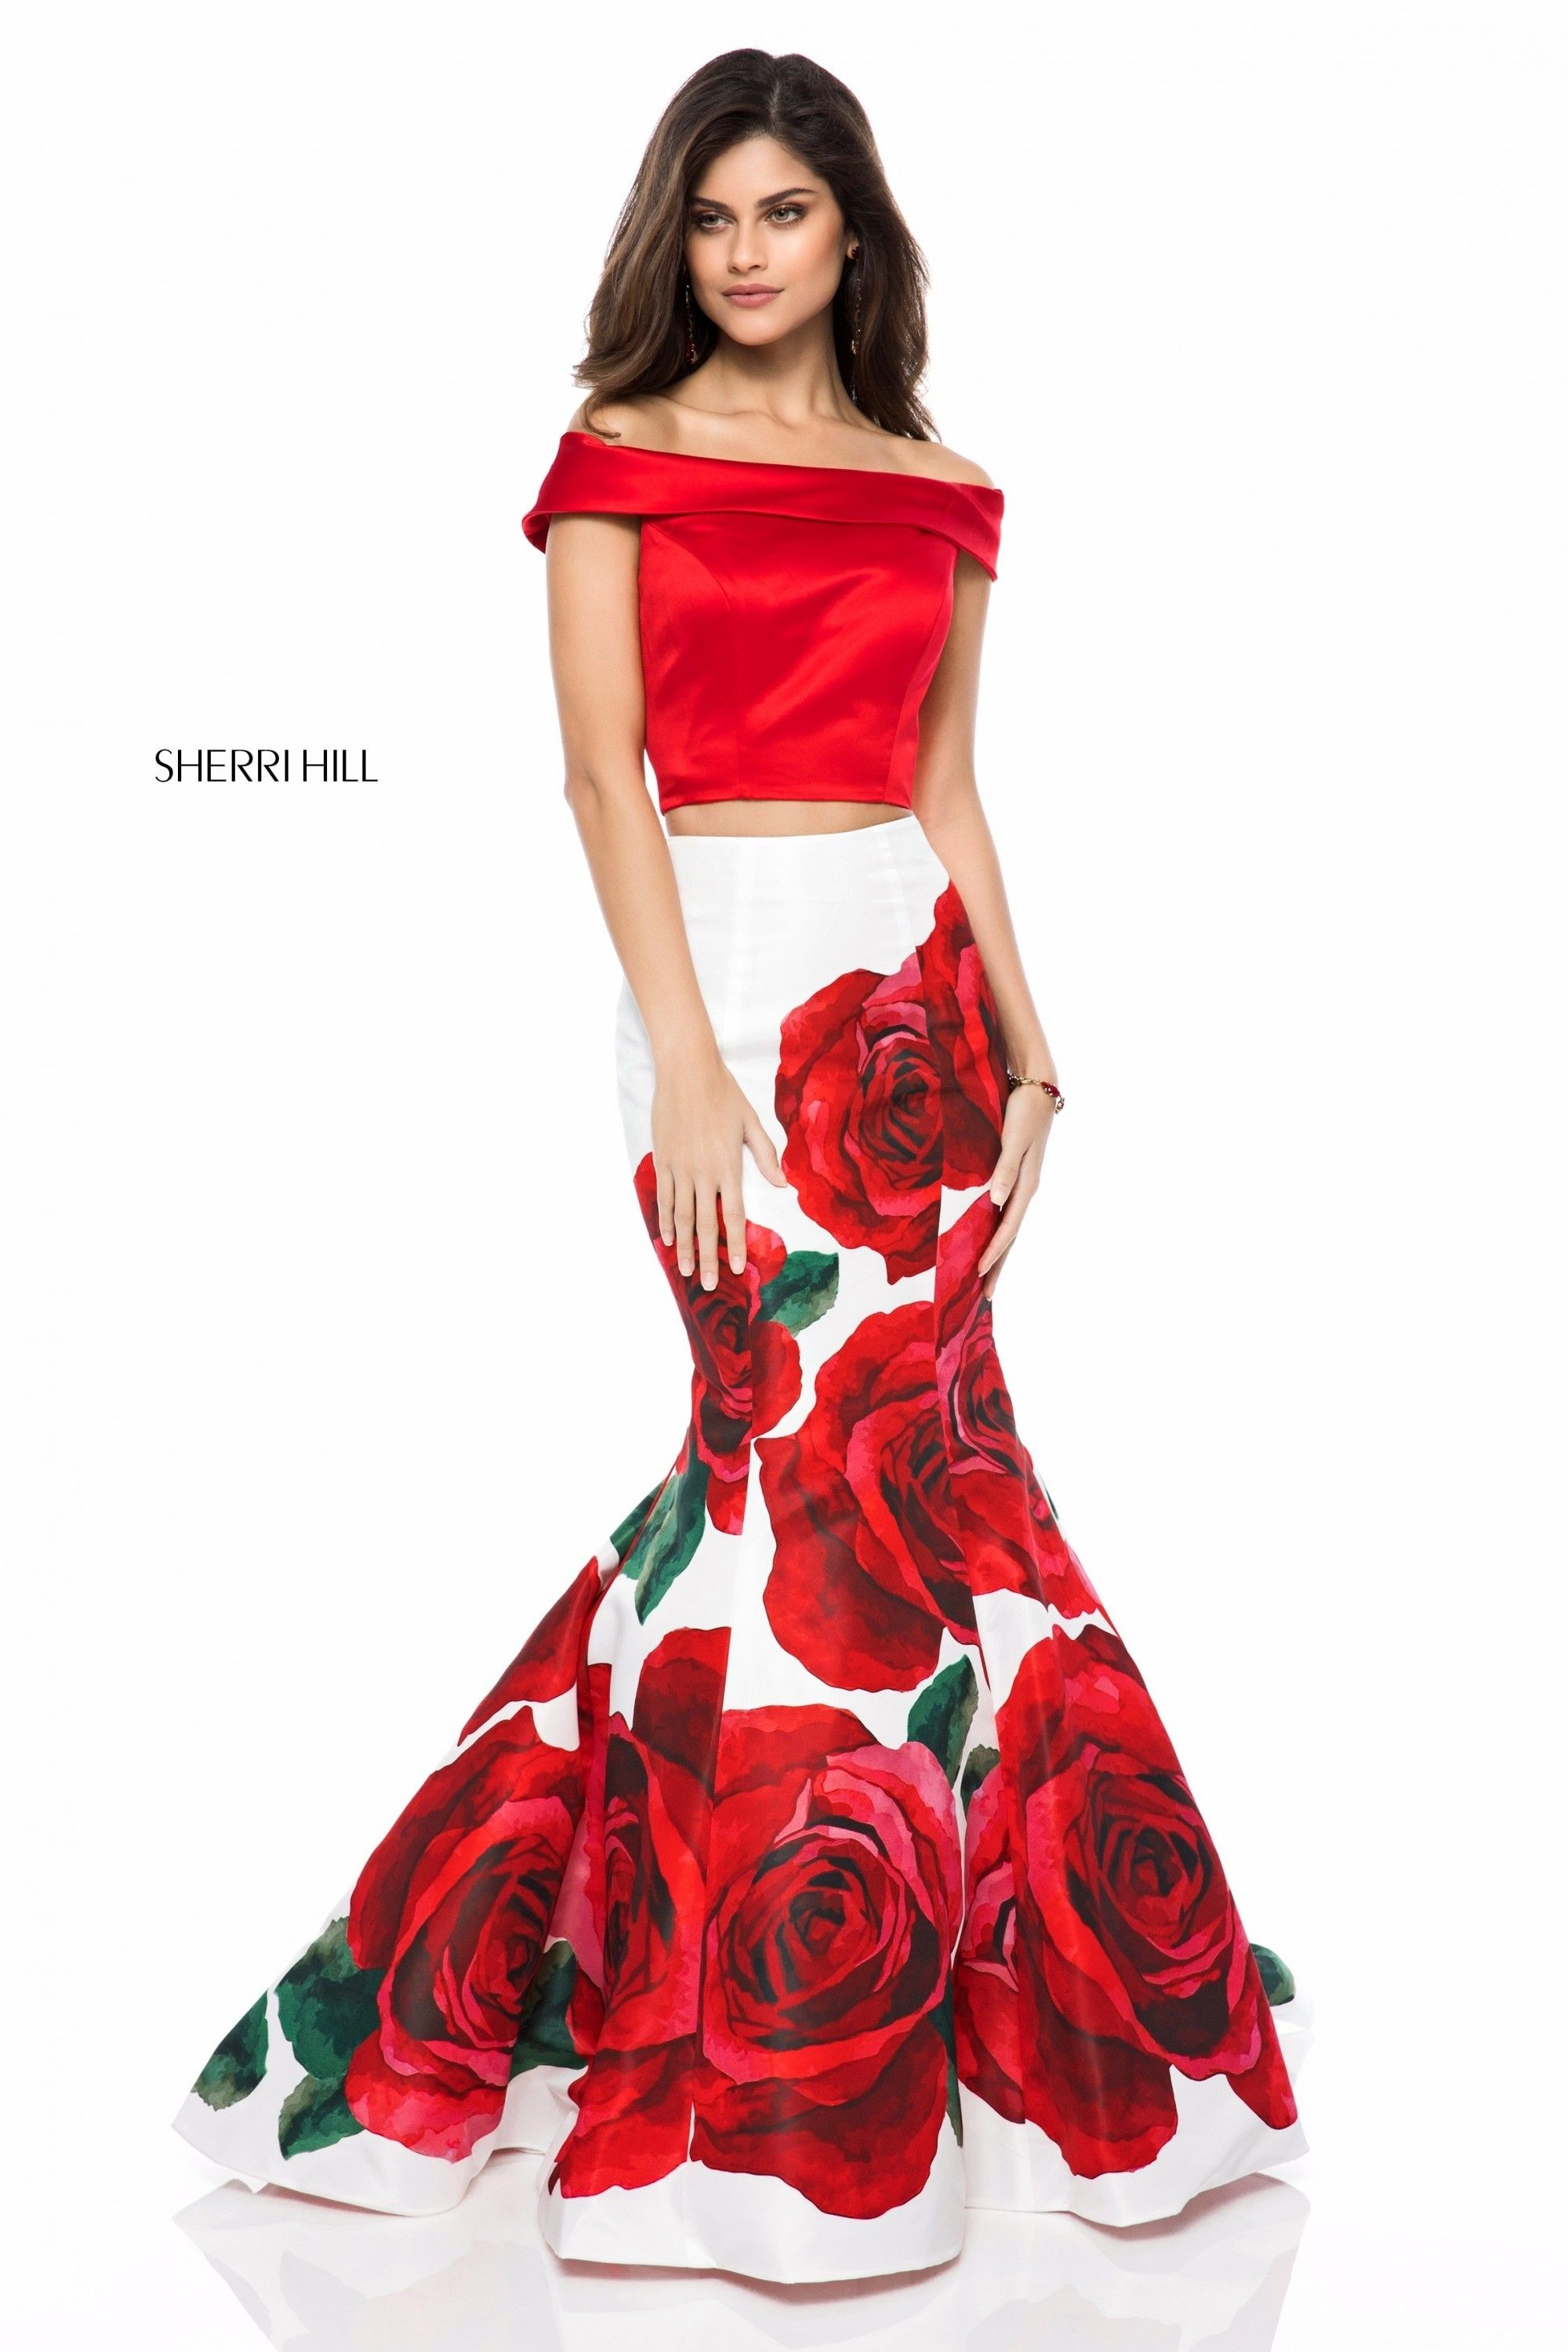 ef46418df0 Receive roses from your admirer in Sherri Hill 51850. This passionate two-piece  mermaid gown includes a satin top with a folded off-the-shoulder neckline